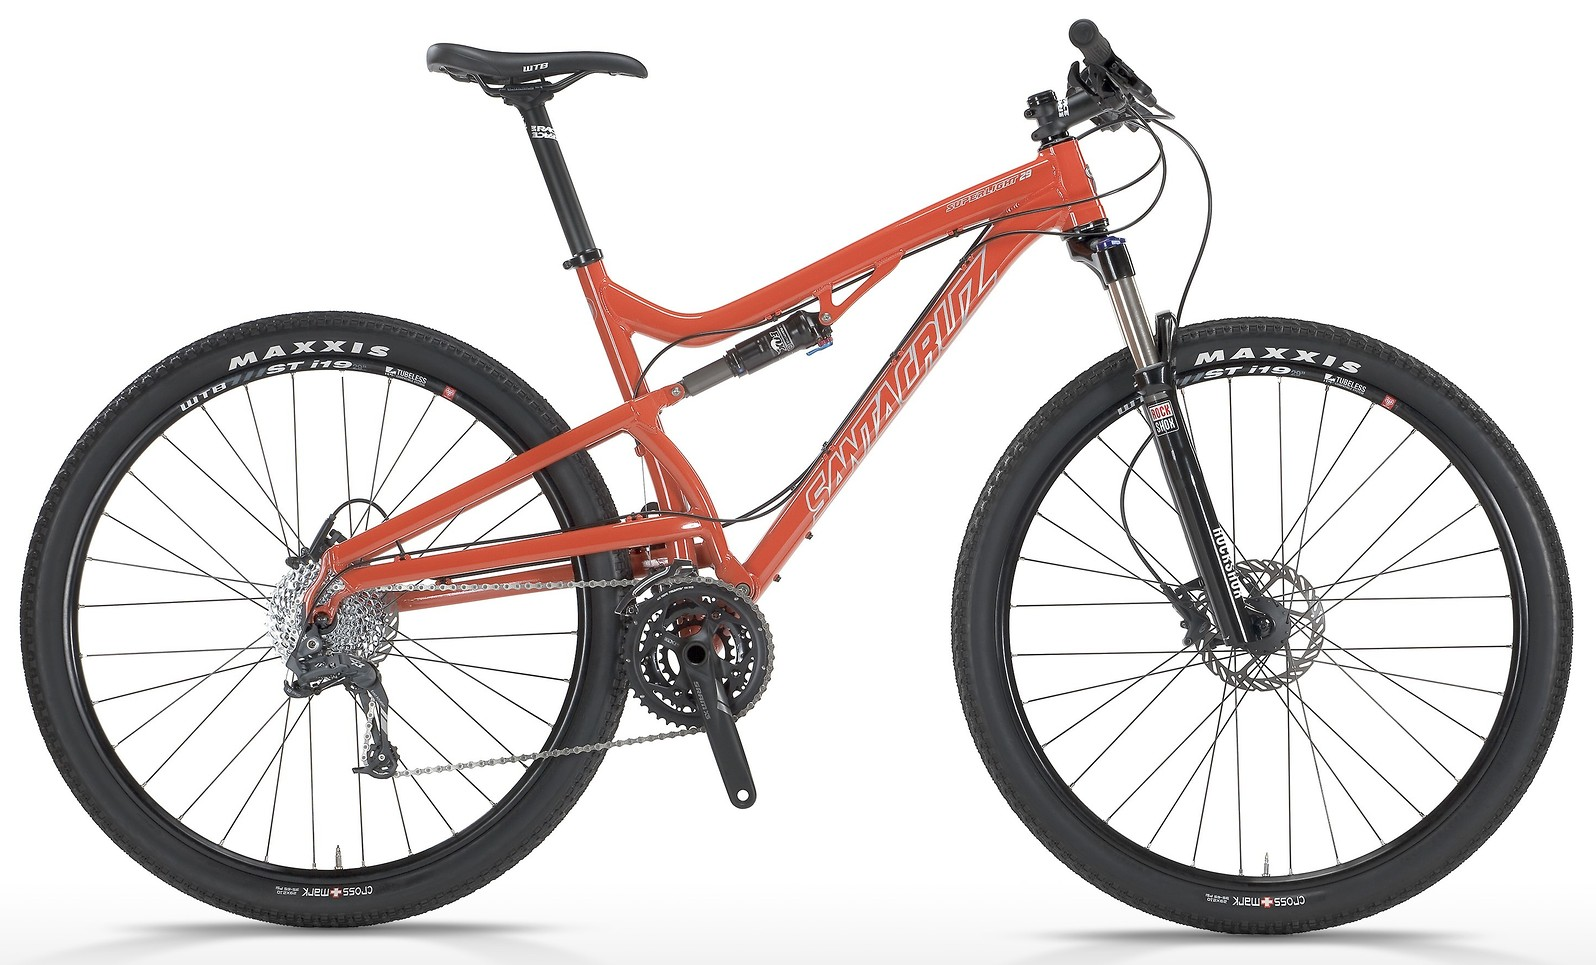 2013 SUPERLIGHT29catalogflat